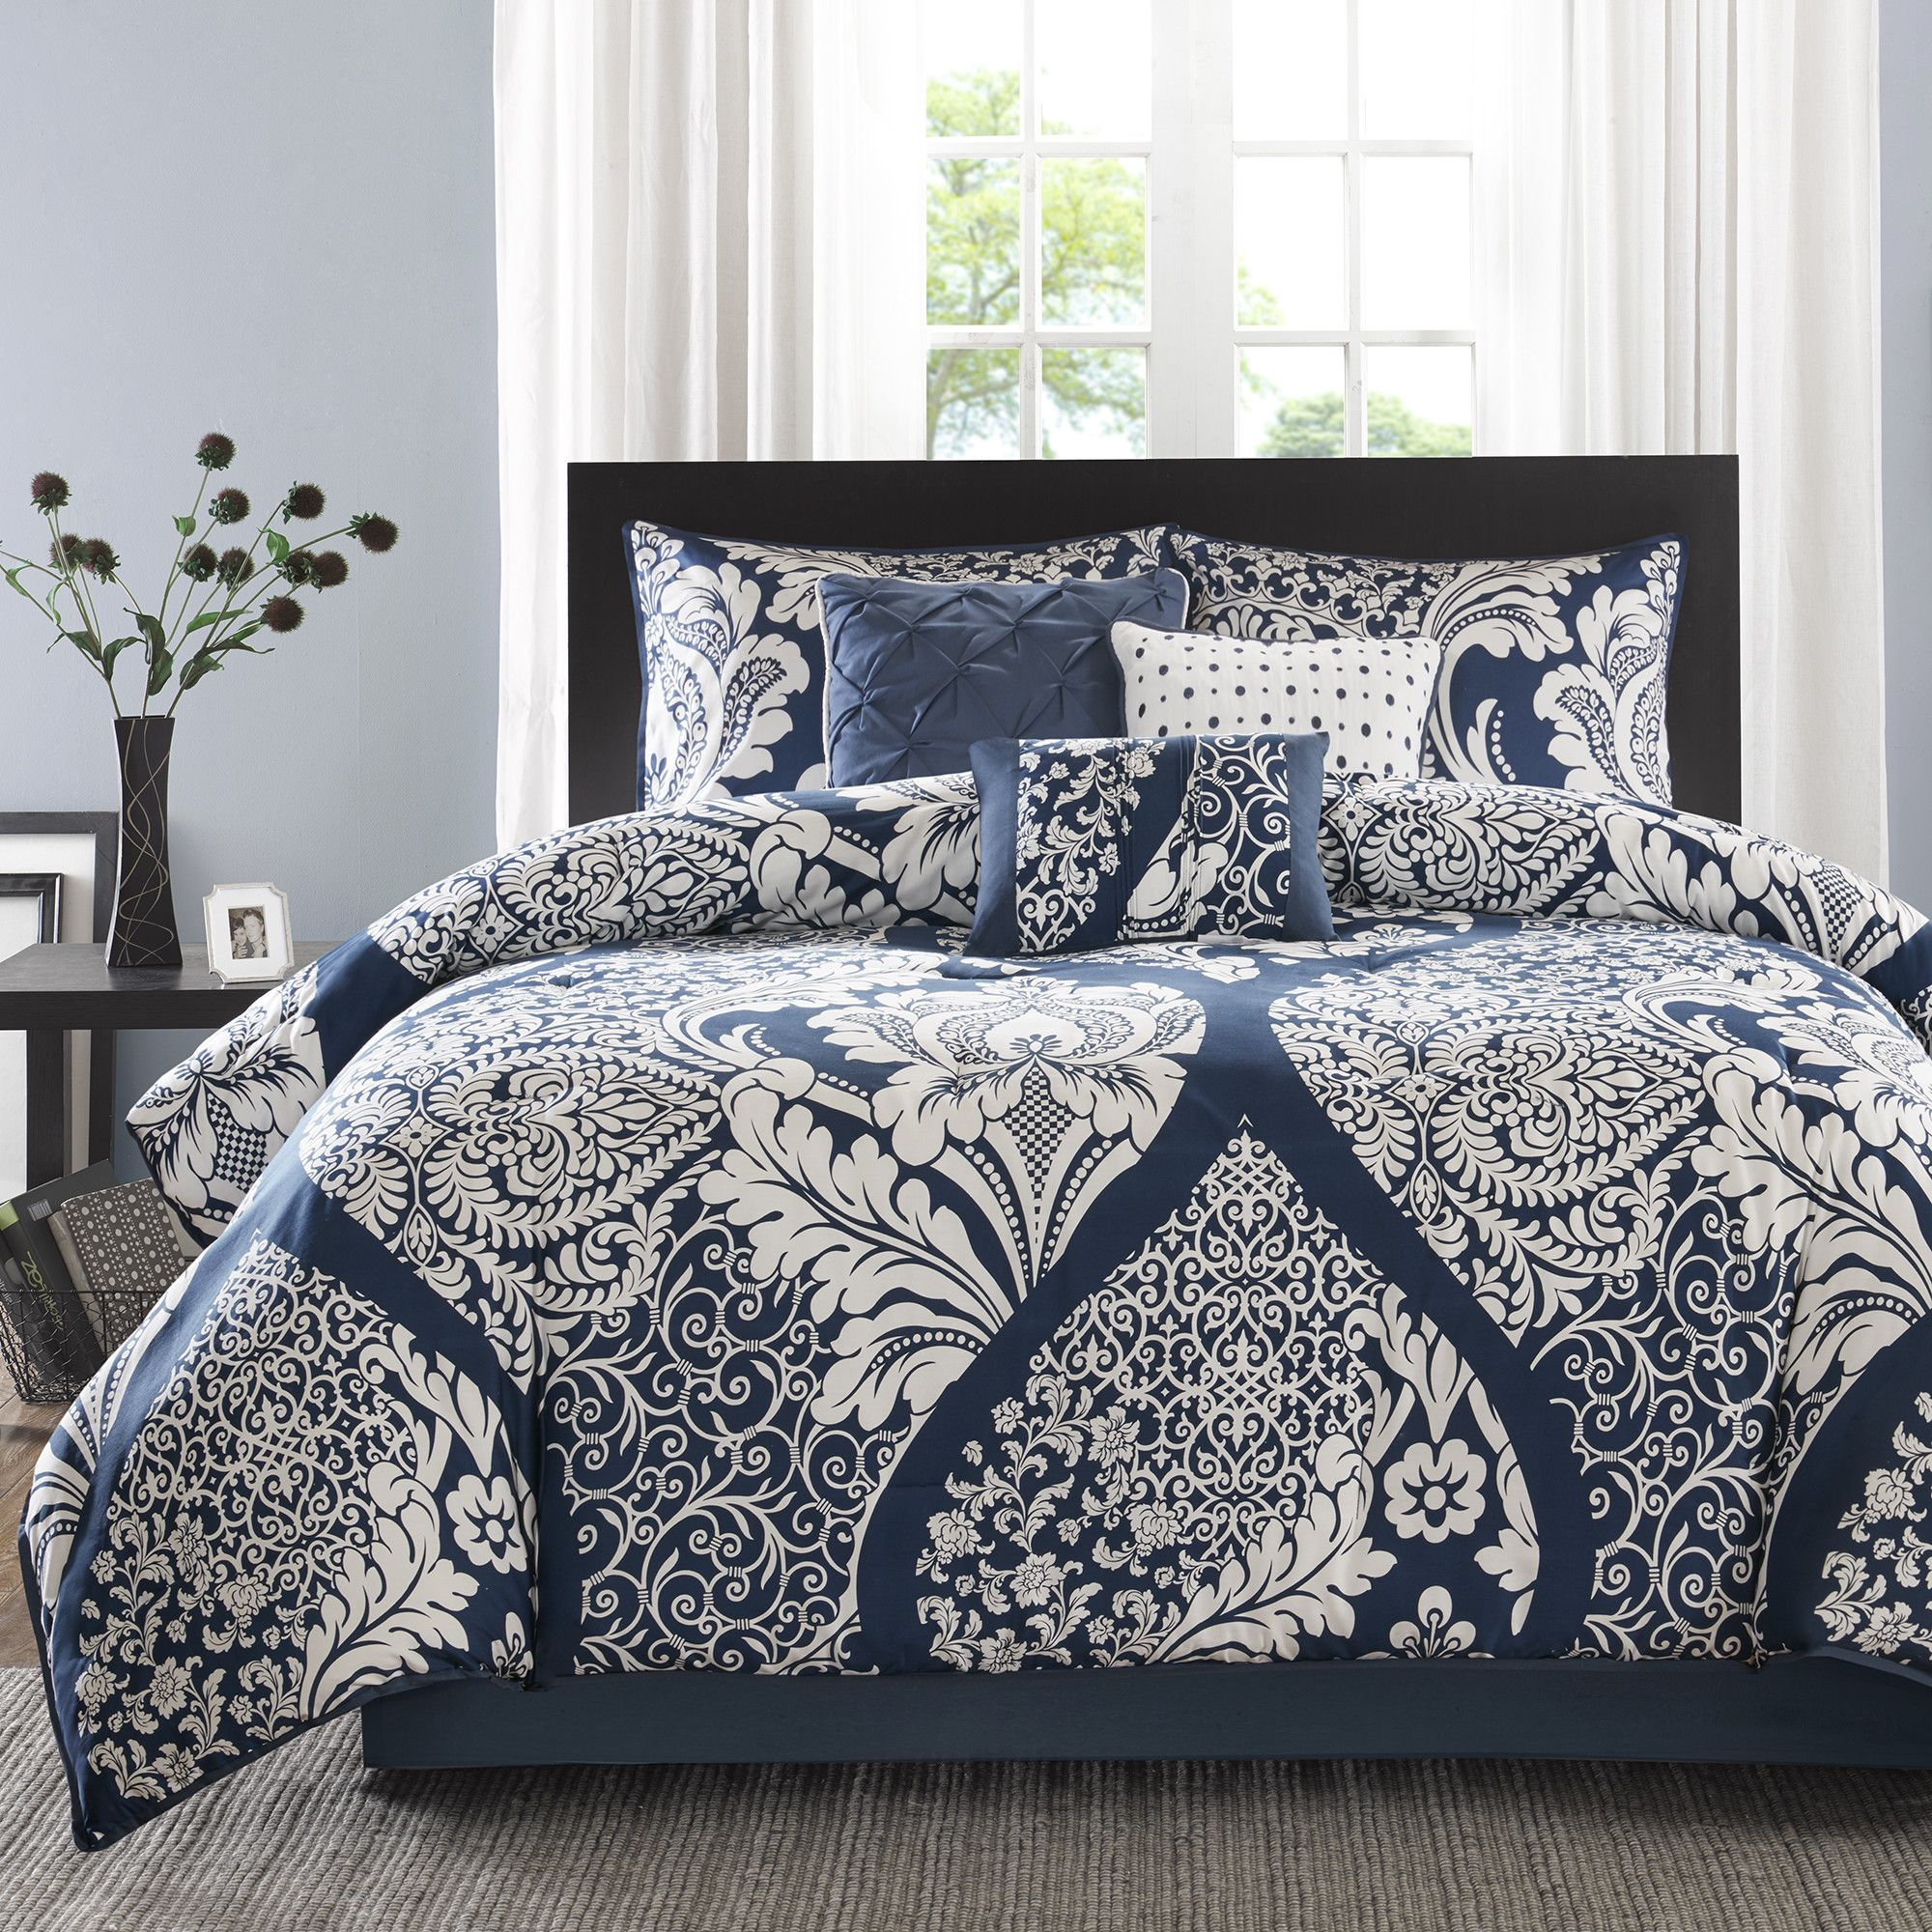 decoration modish bed comforters floral cover in plus cheap king grey bedding quilt bedroom high wells as target and bedspreads blue california duvet comforter with ideas sets on cal design luxury horrible images distinguished